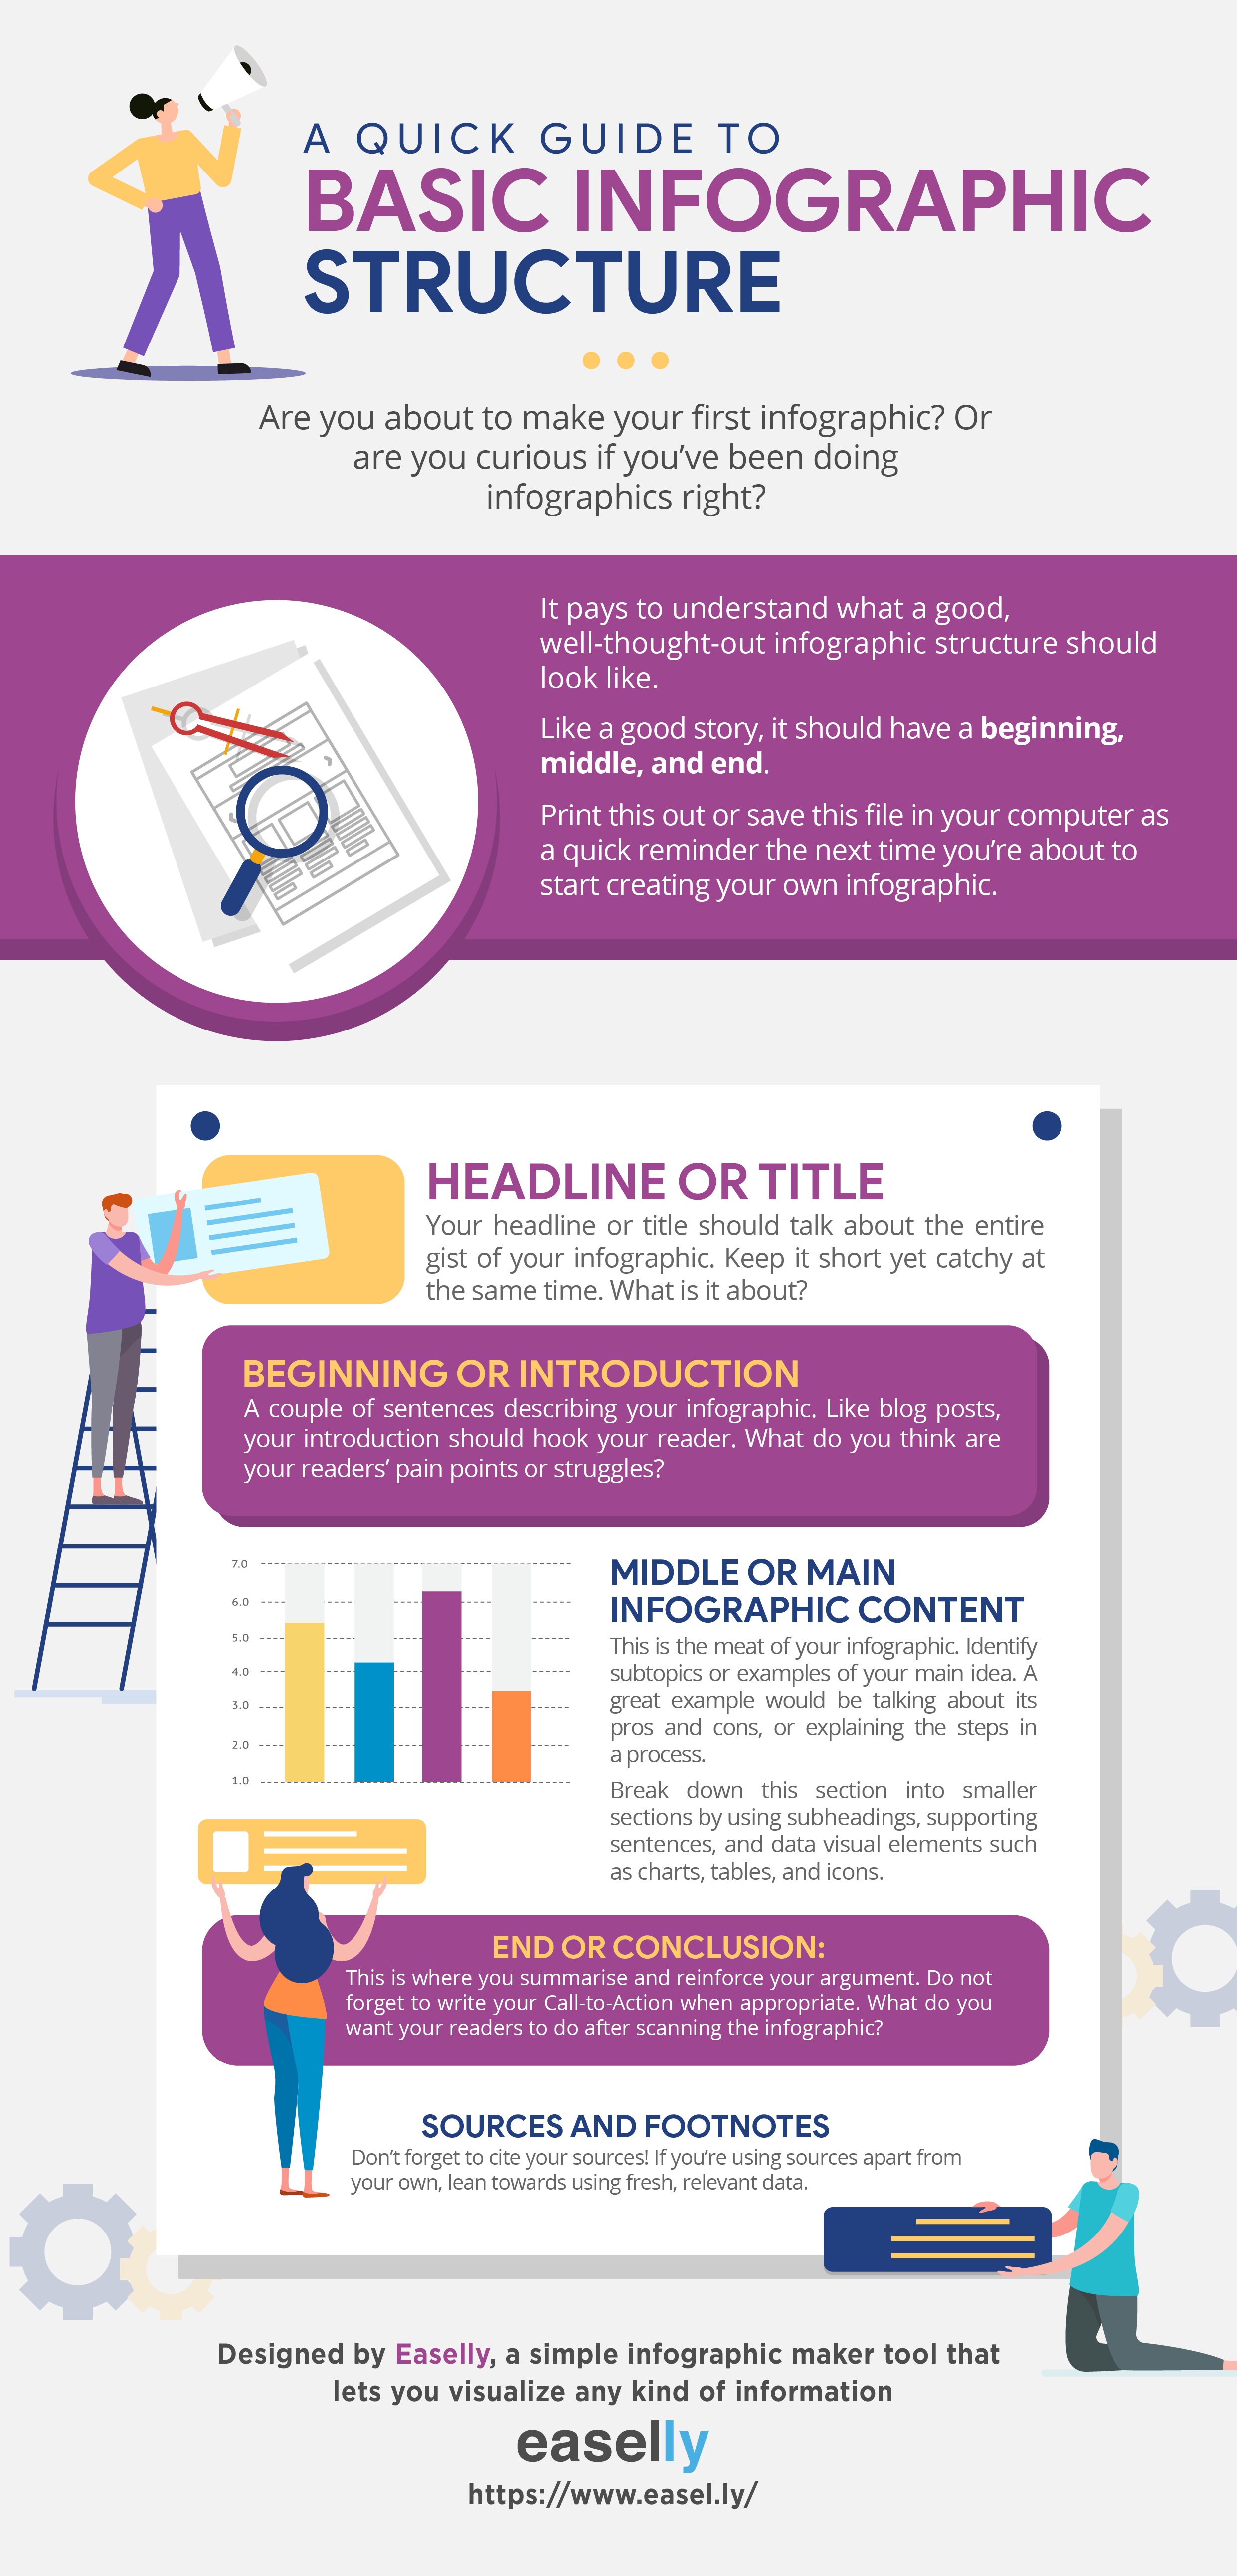 infographic about infographic structure